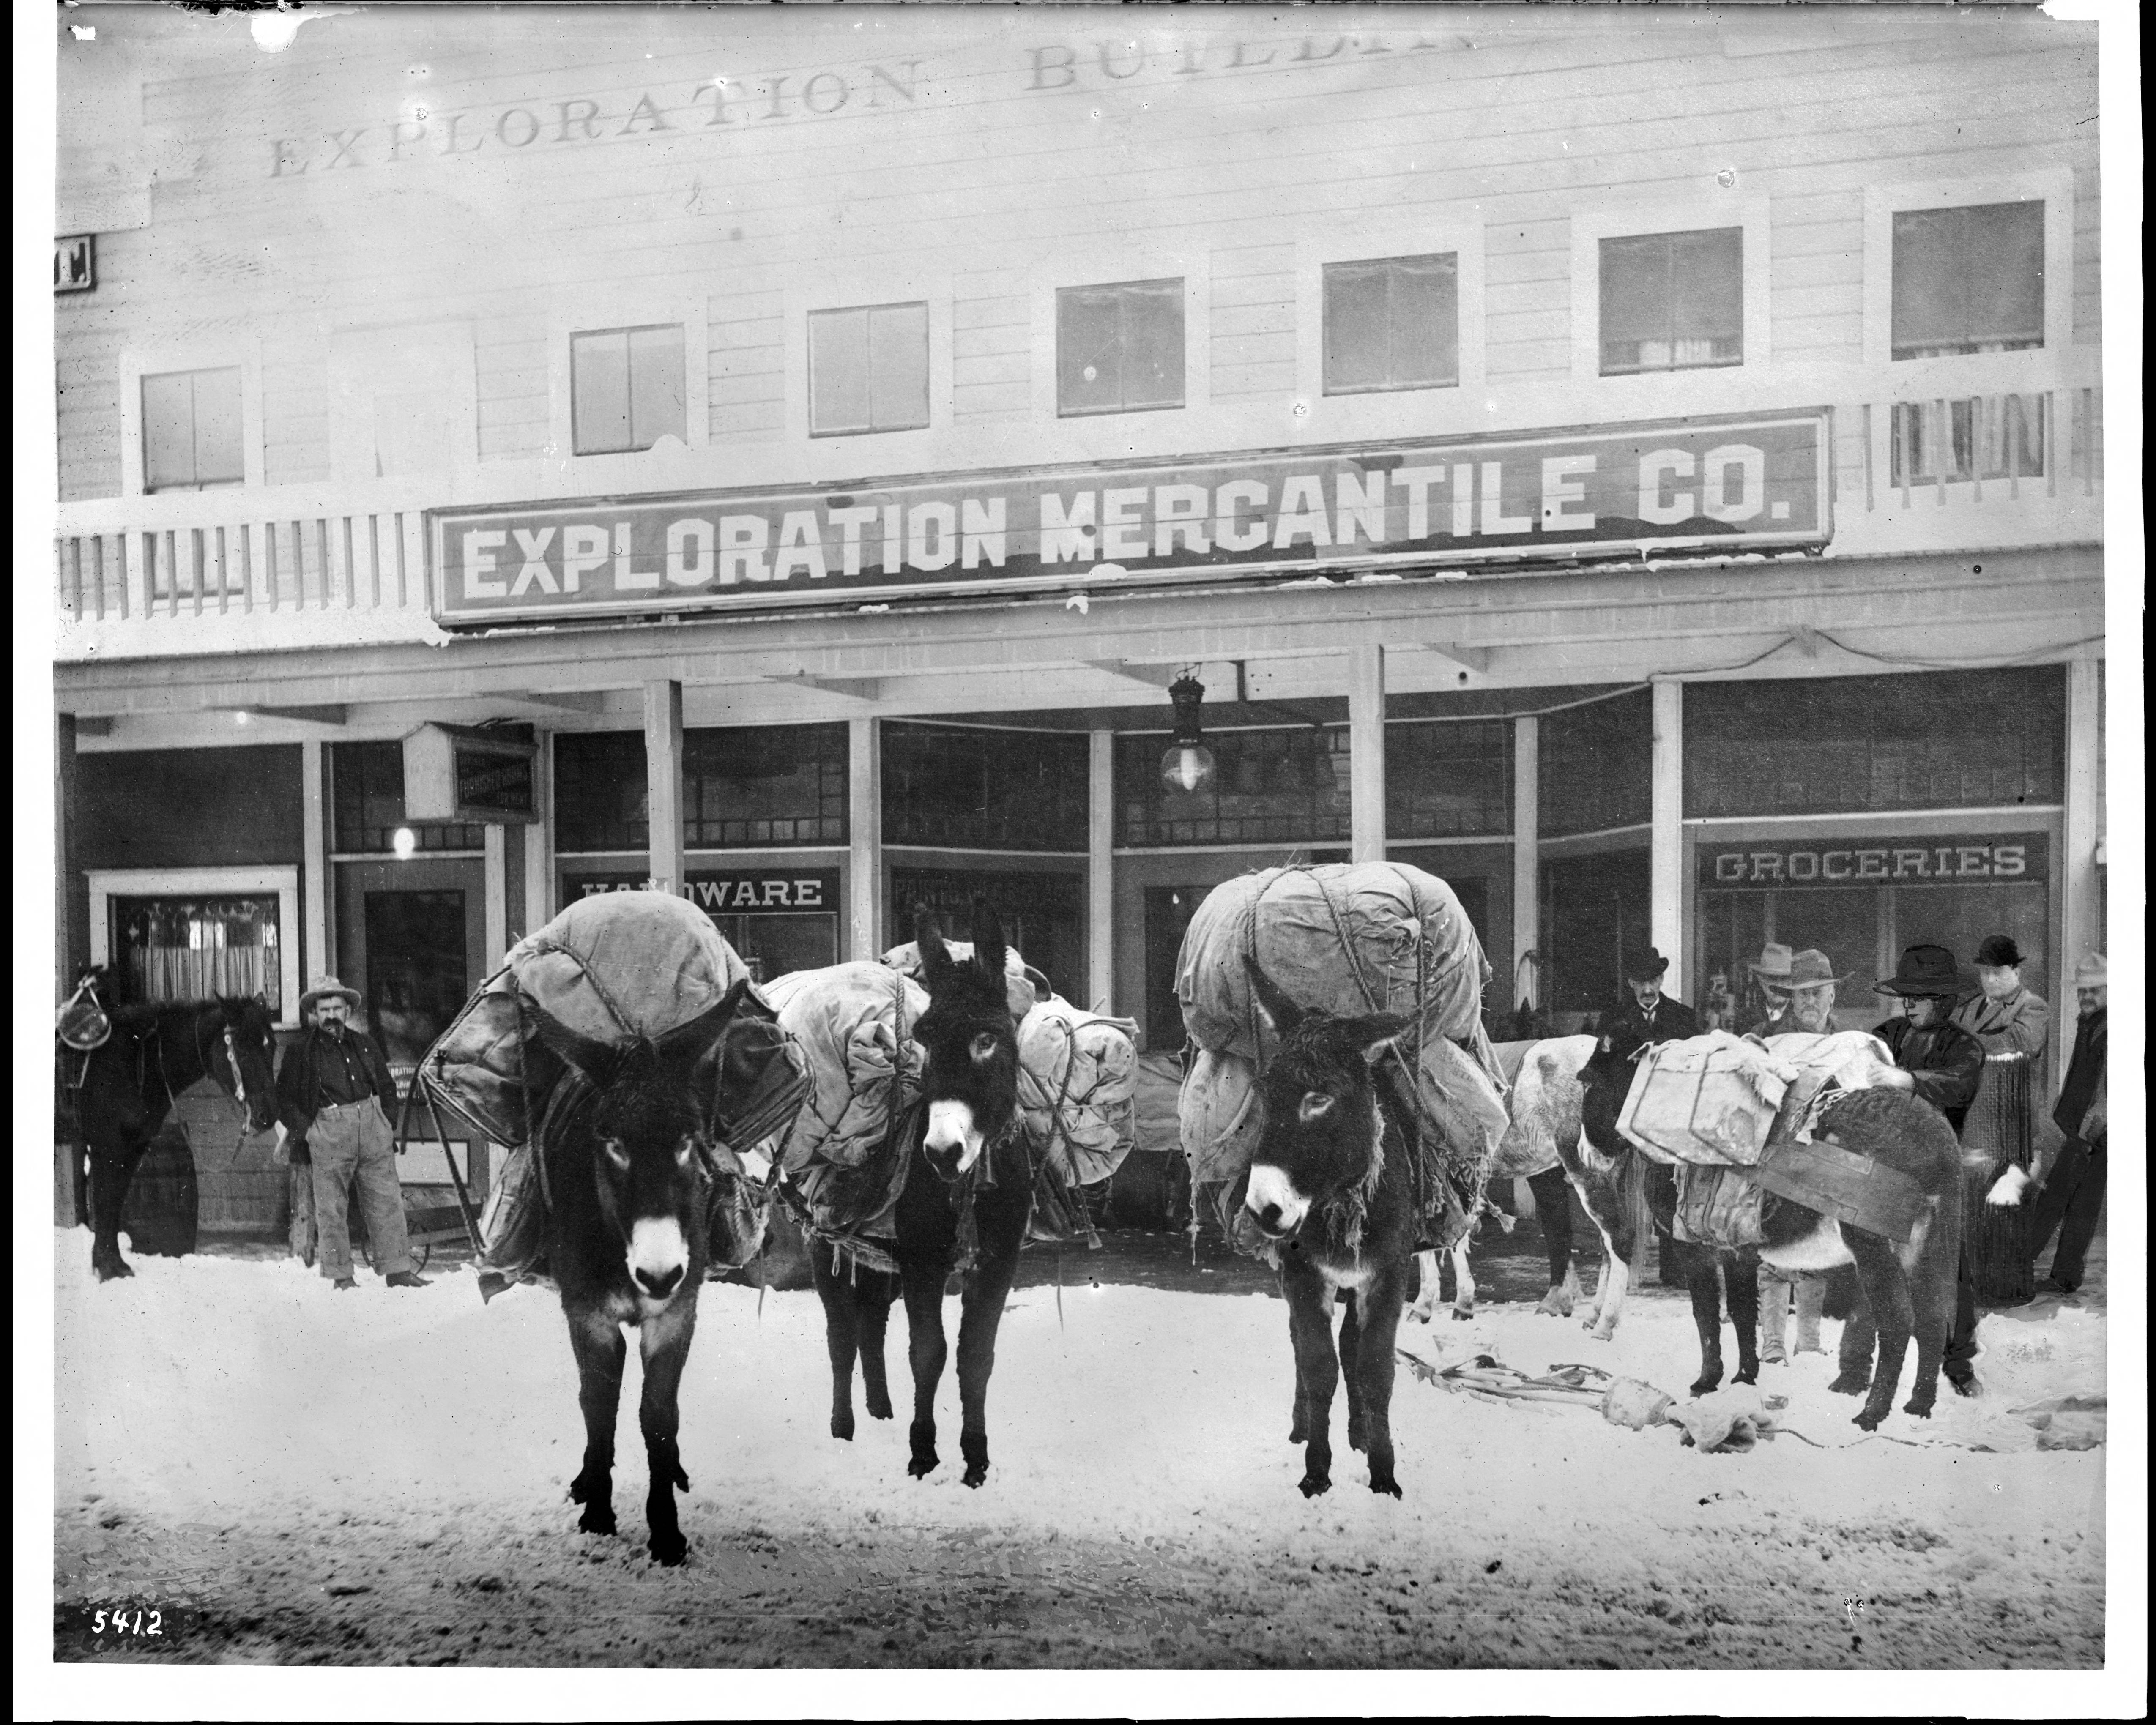 FileMiners Pack Animals In Front Of Mining Supply Stores Goldfield Nevada Ca1900 CHS 5412